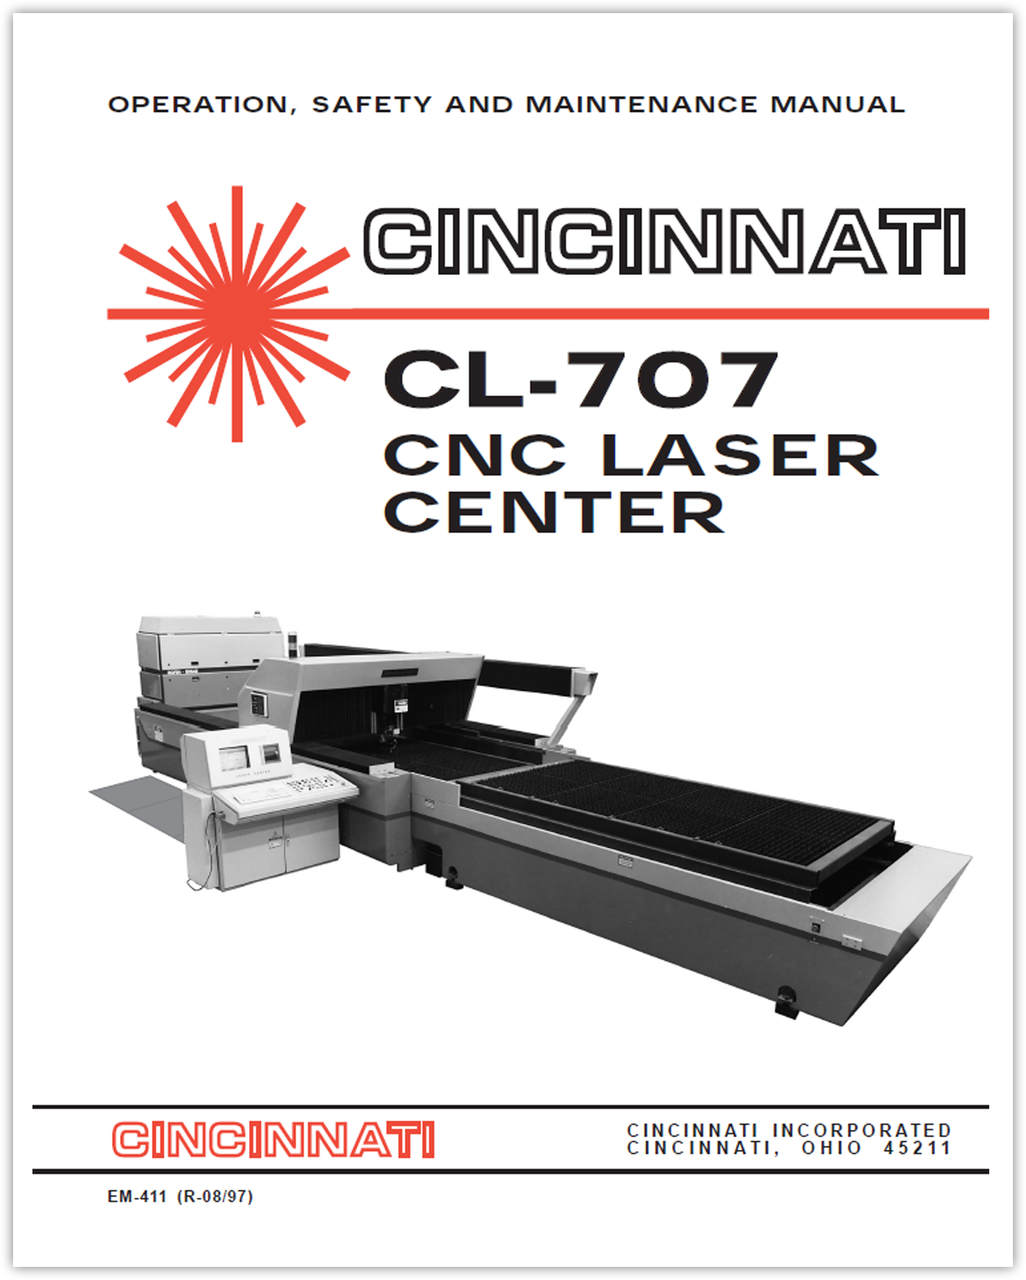 EM-411 (R-08-97) CL-707 Laser Center Operation, Safety and Maintenance Manual